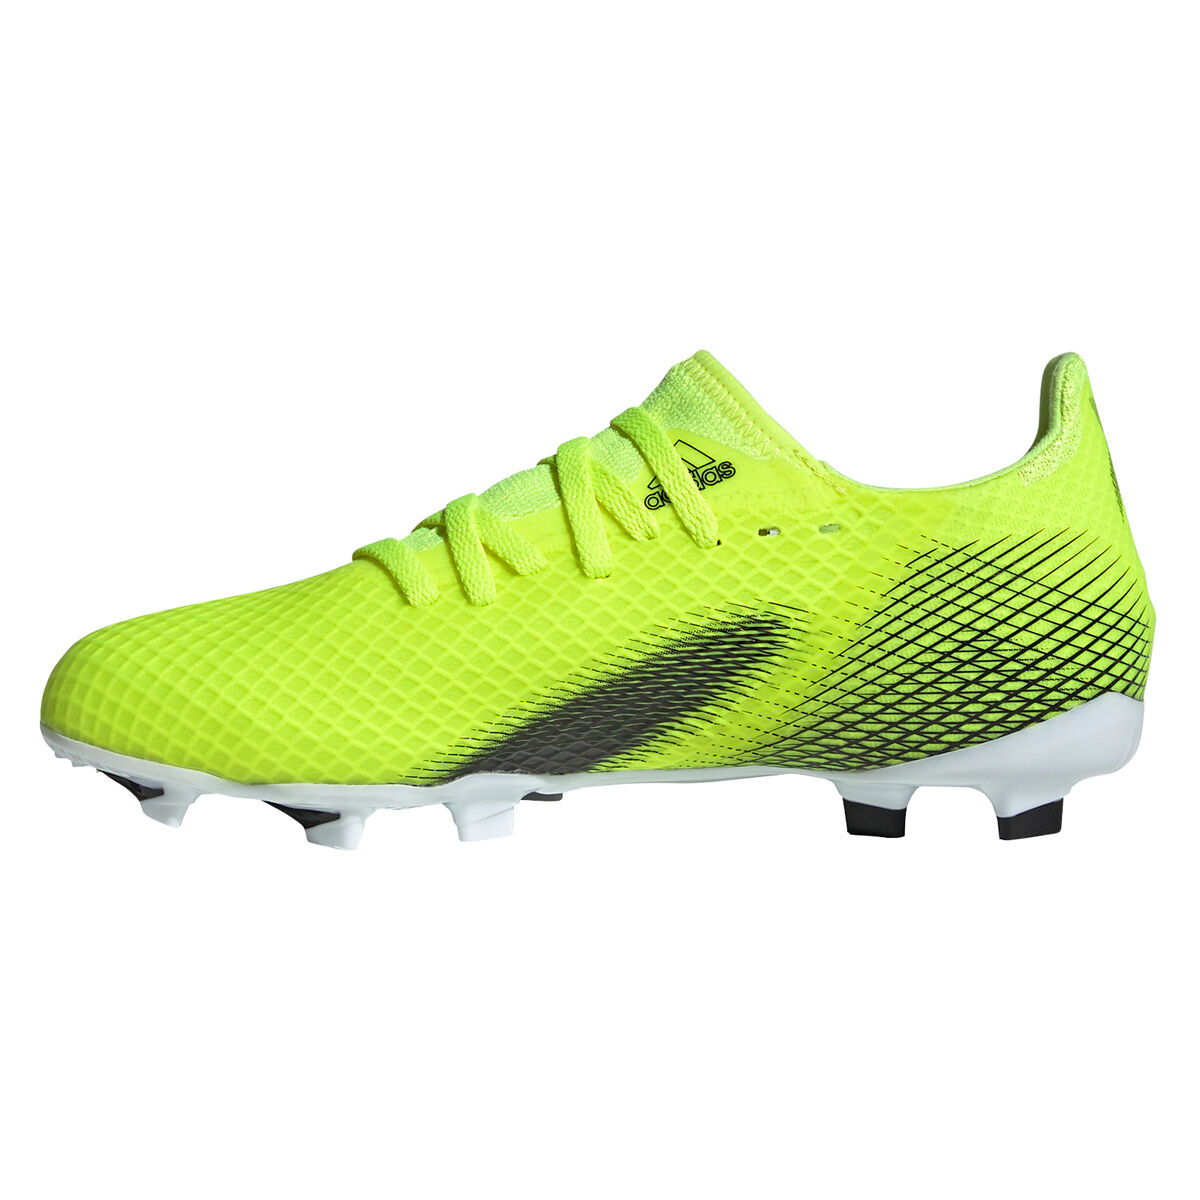 adidas torsion 2015 colorful shoes free printable | adidas X Ghosted .3 Kids Football Boots